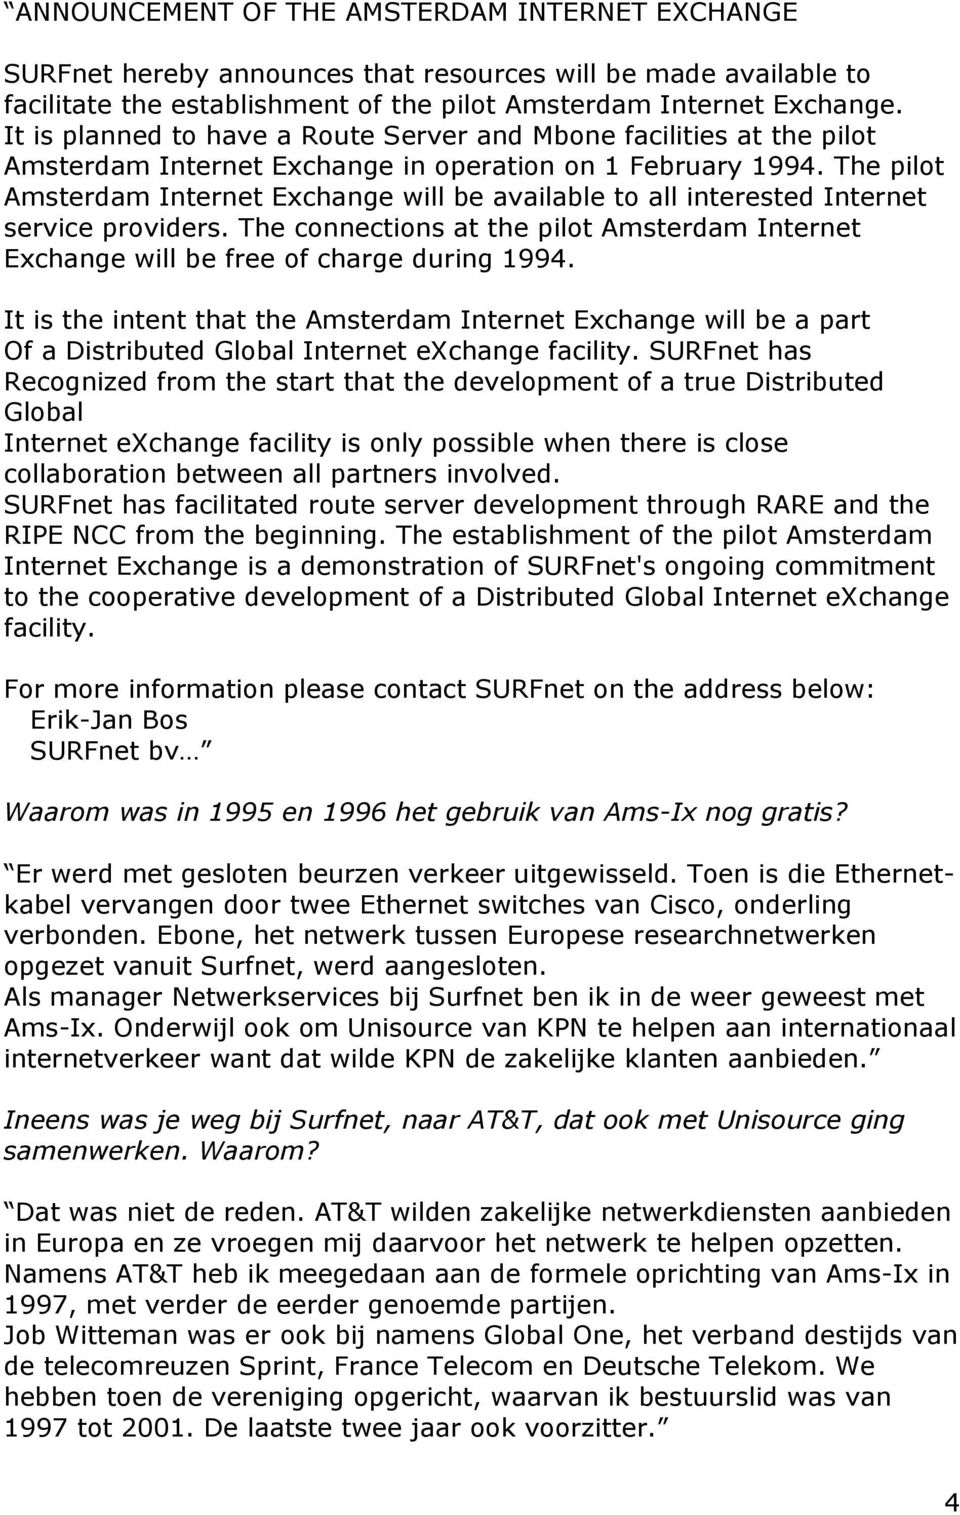 The pilot Amsterdam Internet Exchange will be available to all interested Internet service providers. The connections at the pilot Amsterdam Internet Exchange will be free of charge during 1994.